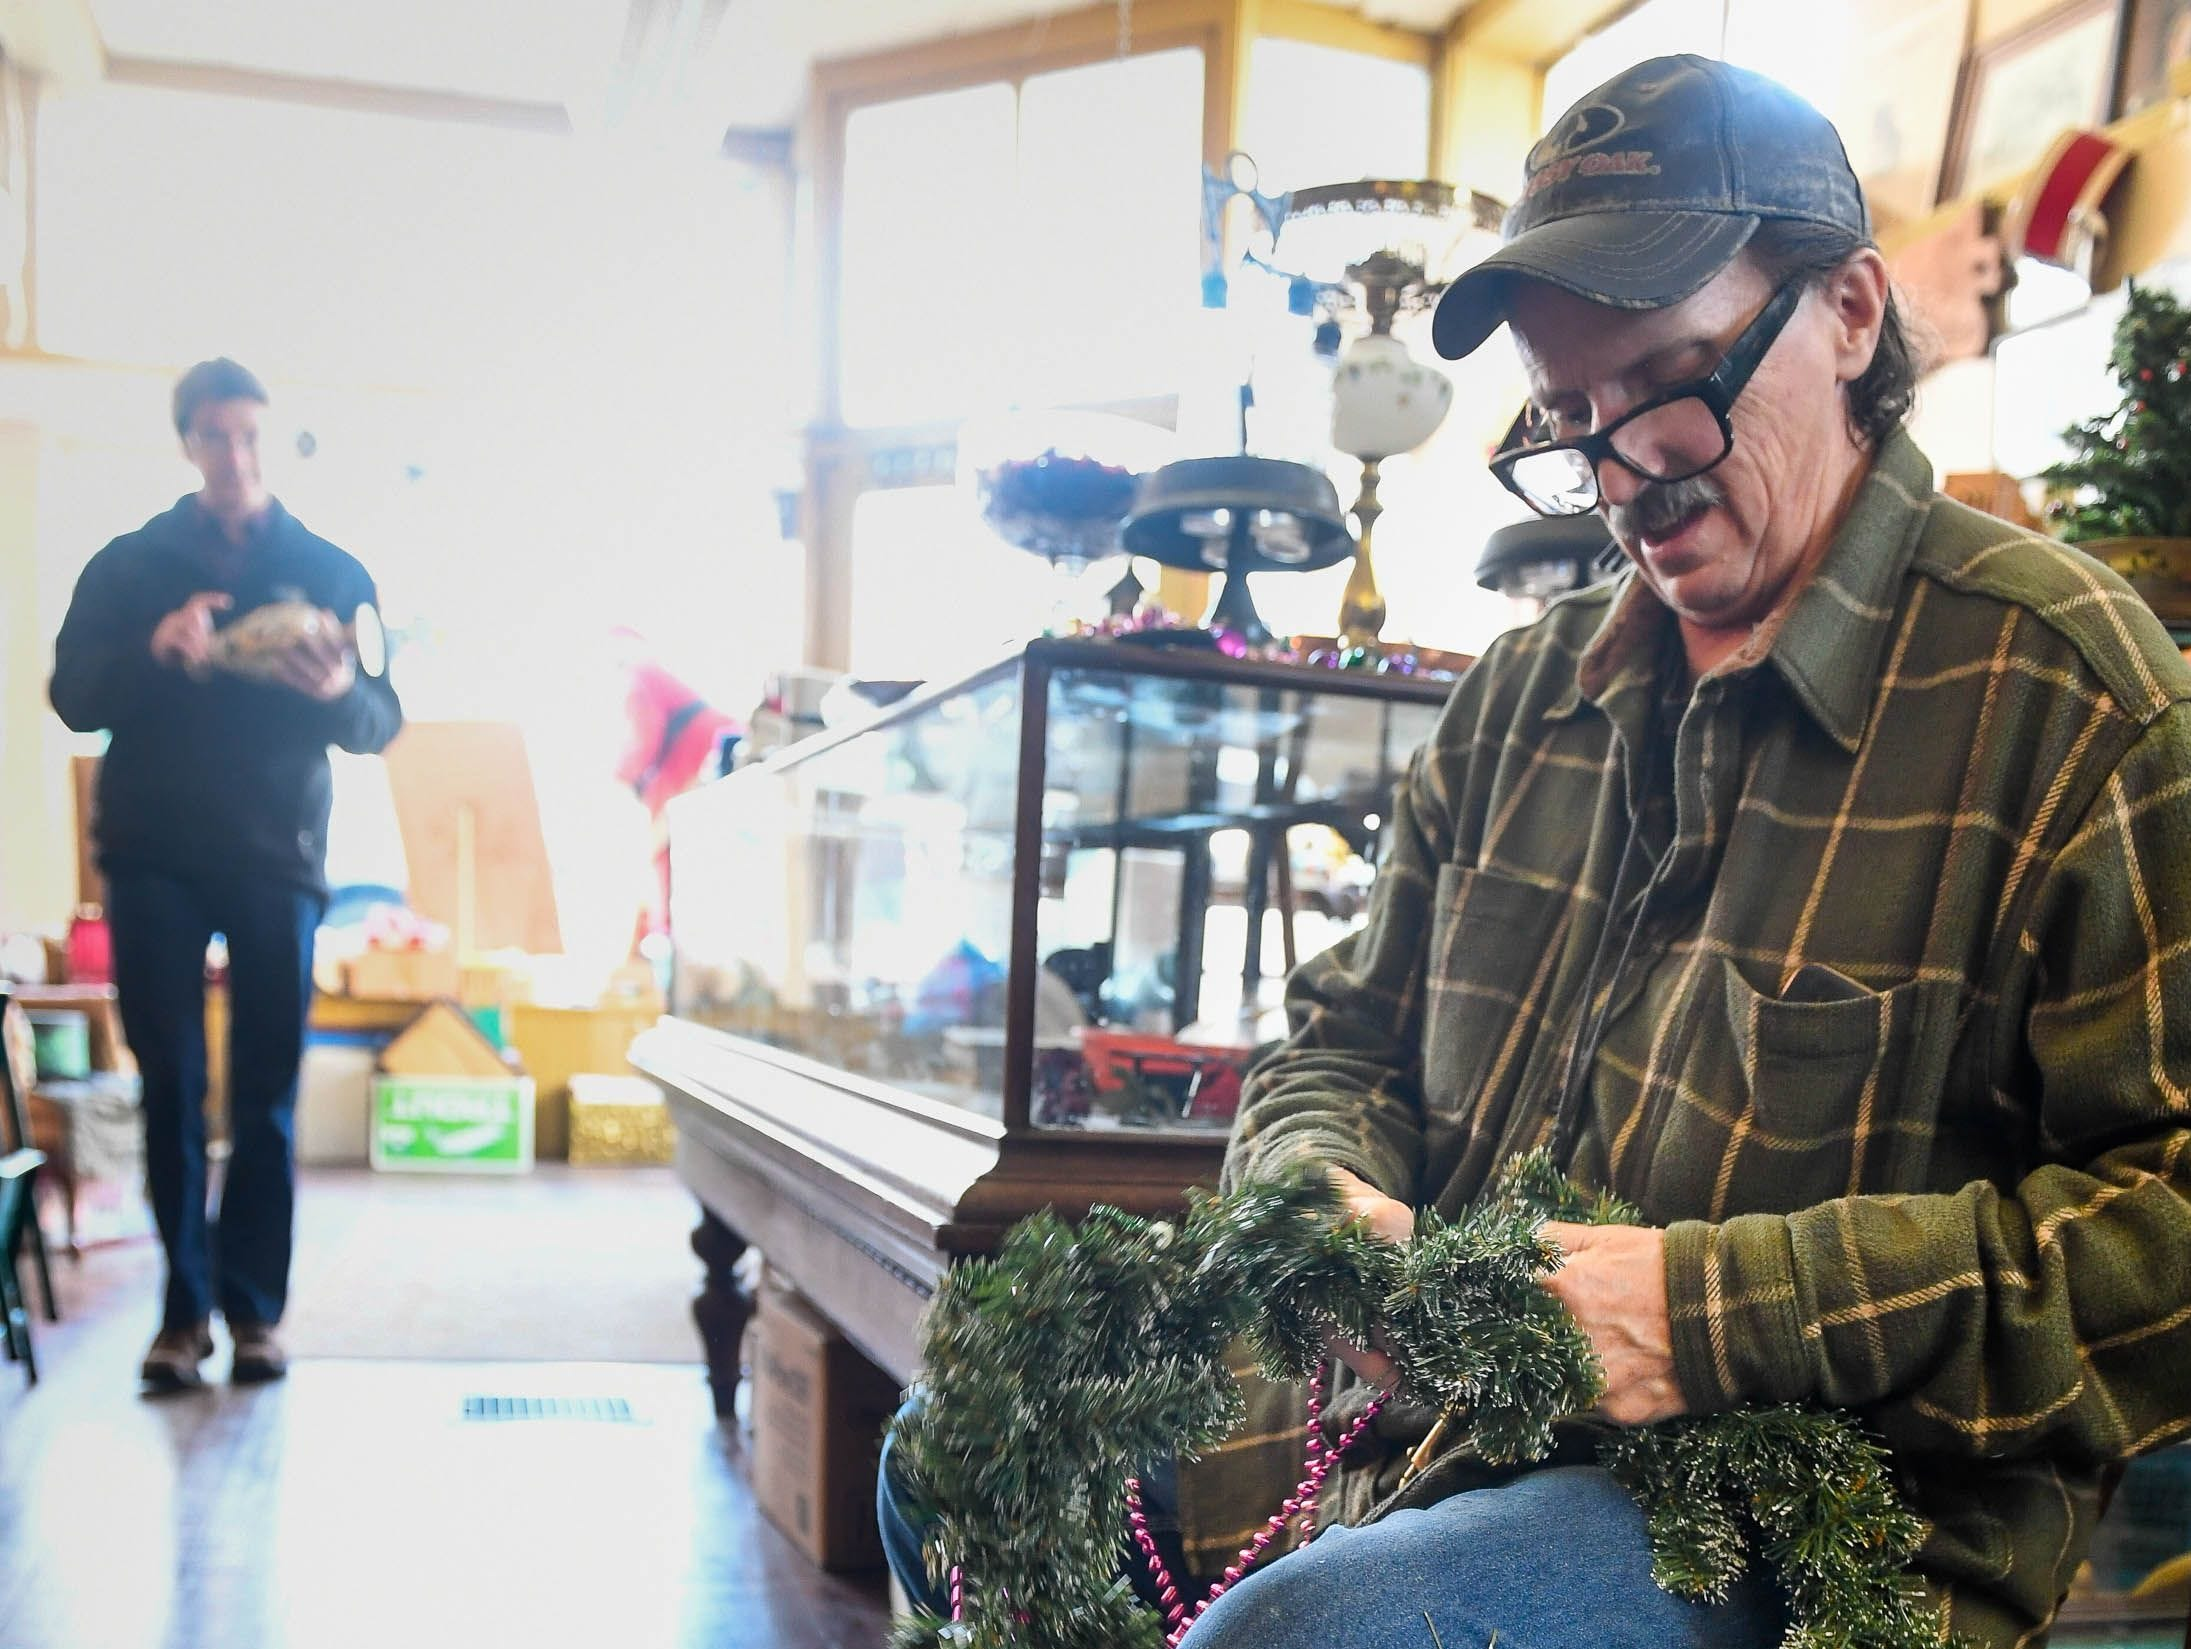 Scott Lauderdale untangles some Christmas decorations at the Country Gentleman Antique store during the Newburgh Celebrates Christmas event.